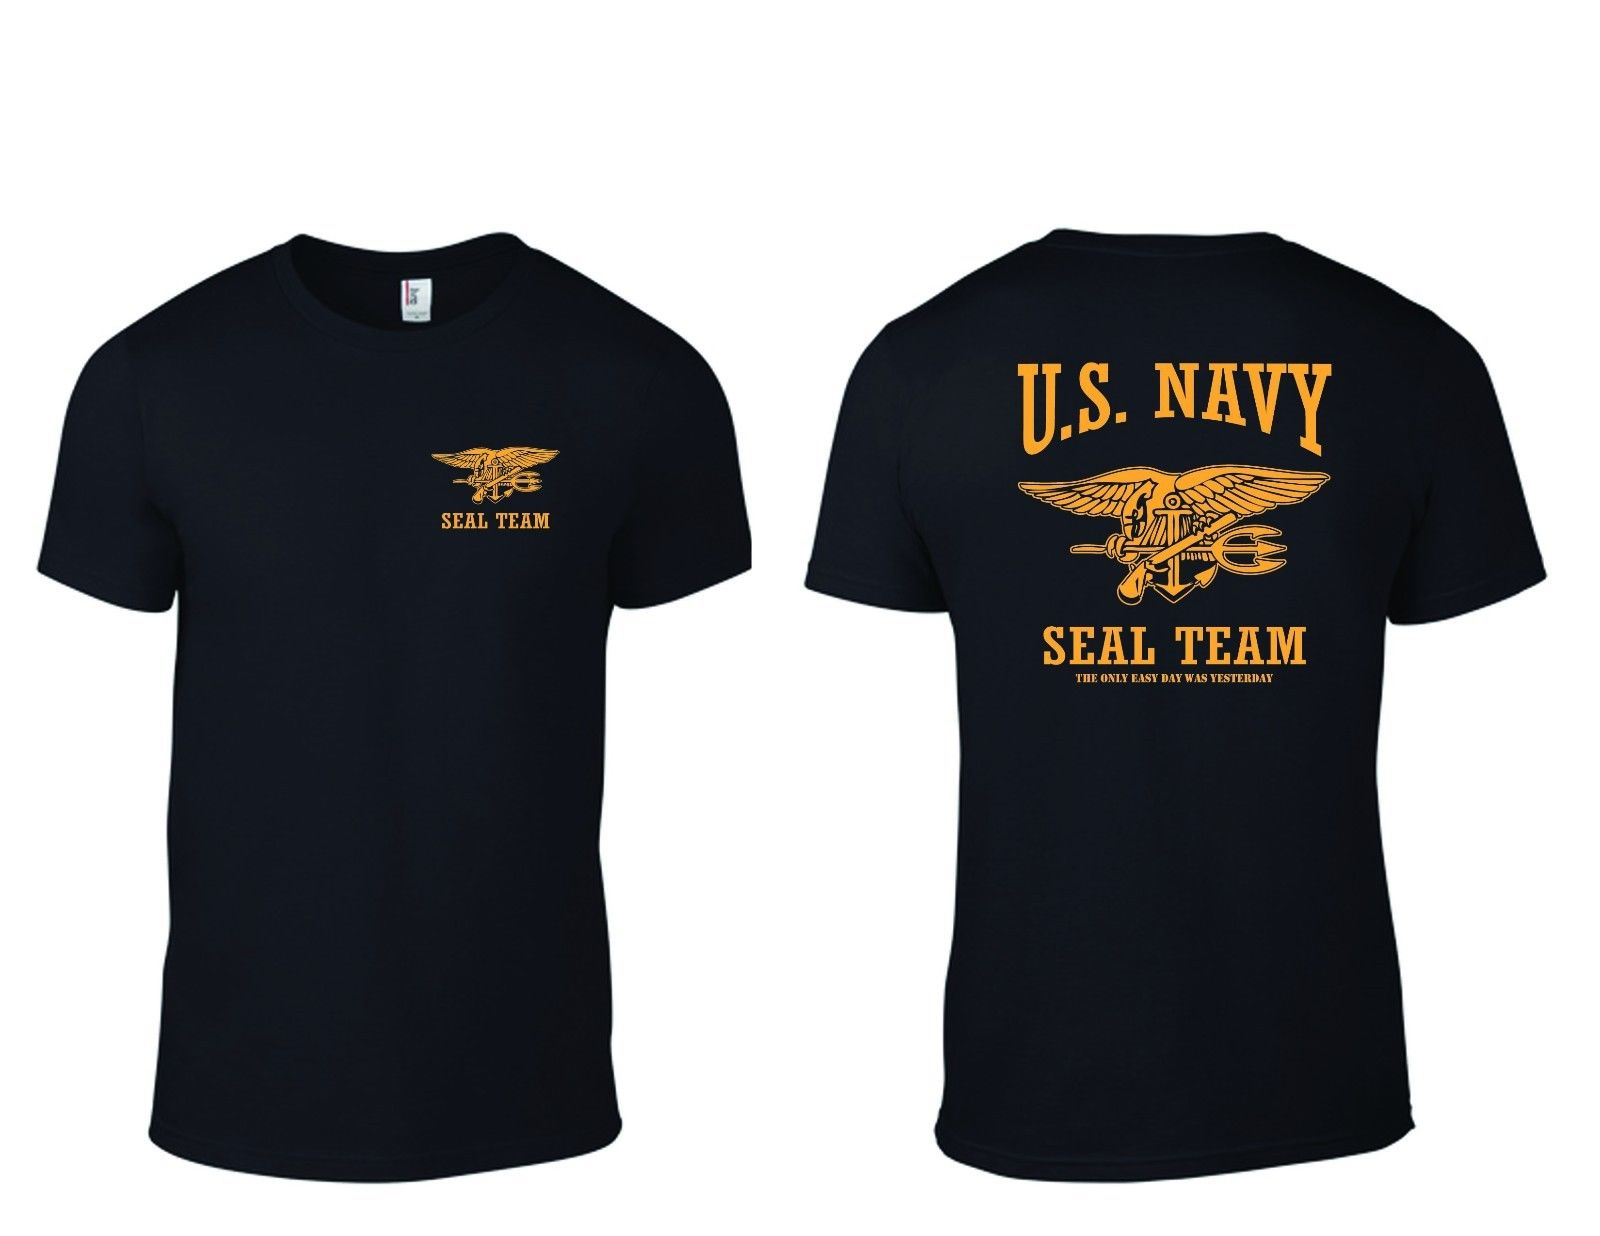 U.S. NAVY SEAL TEAM   T  -  Shirt   Only Easy Day Was Yesterday B/Y   T  -  SHIRT   Printed   T     Shirts   Short Sleeve Hipster Tee Plus Size